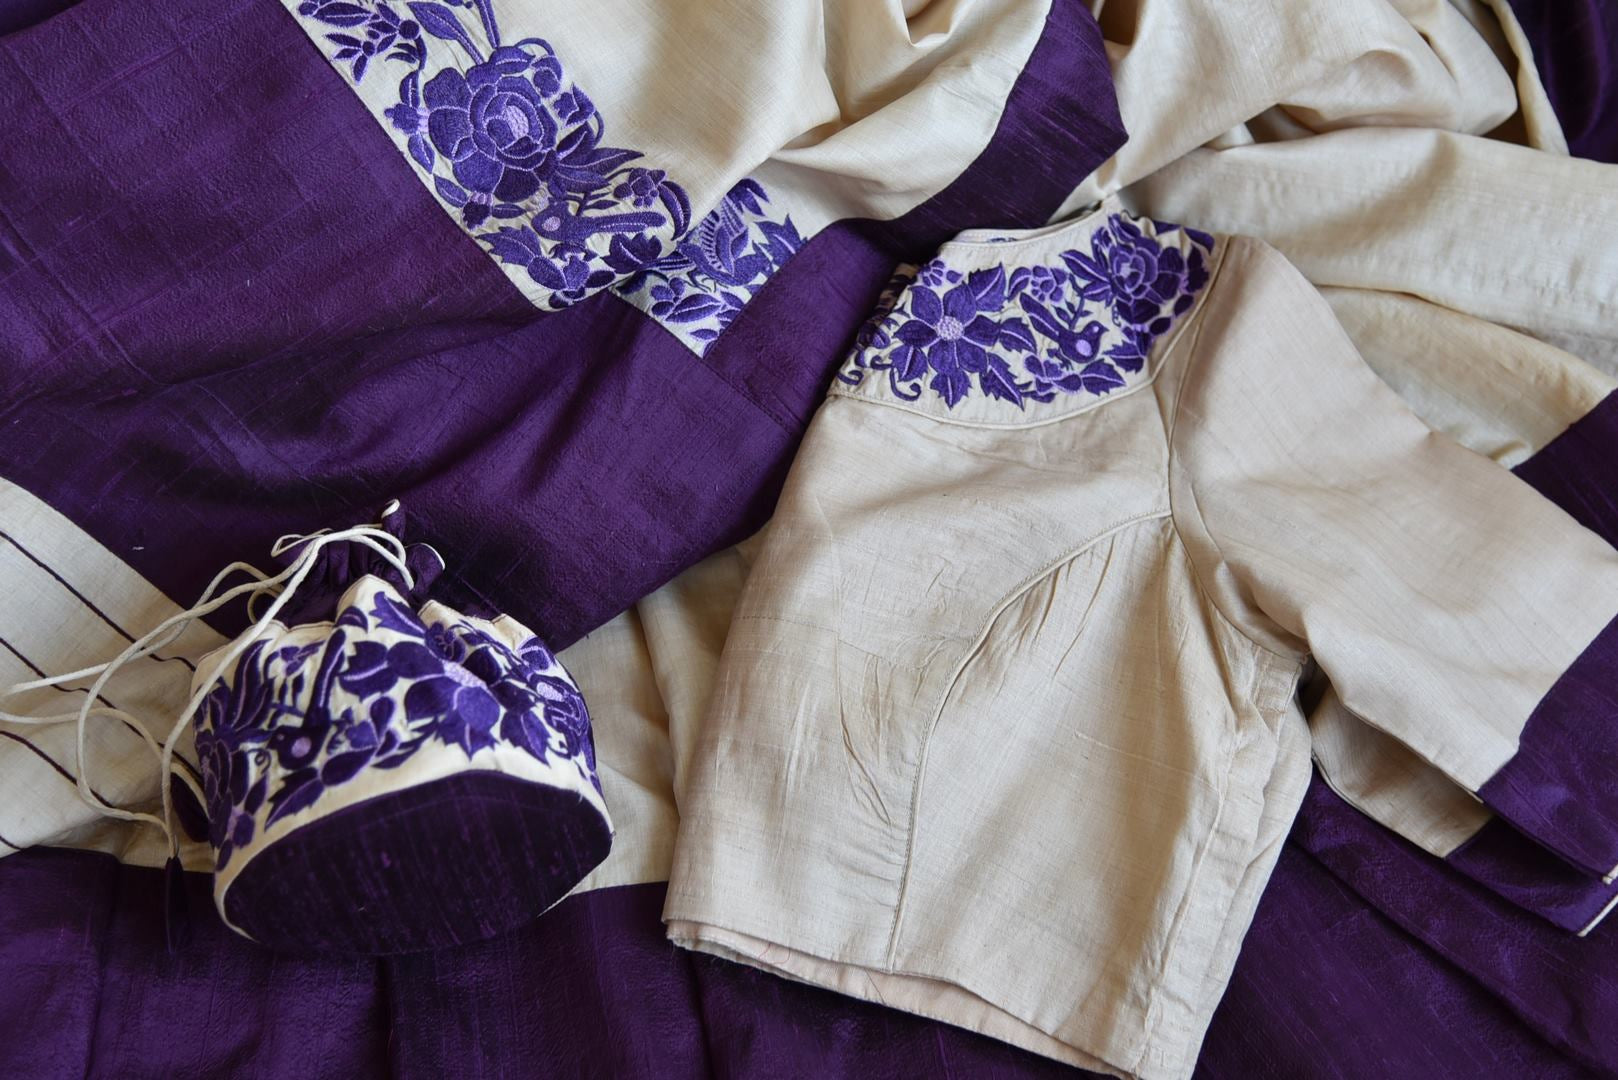 Buy stunning cream tussar sari online in USA with purple border and embroidered saree blouse. Grab exquisite handwoven sarees, embroidered saris, designer sarees with blouse for the coming festive and wedding season from Pure Elegance Indian boutique in USA. Shop online now.-details